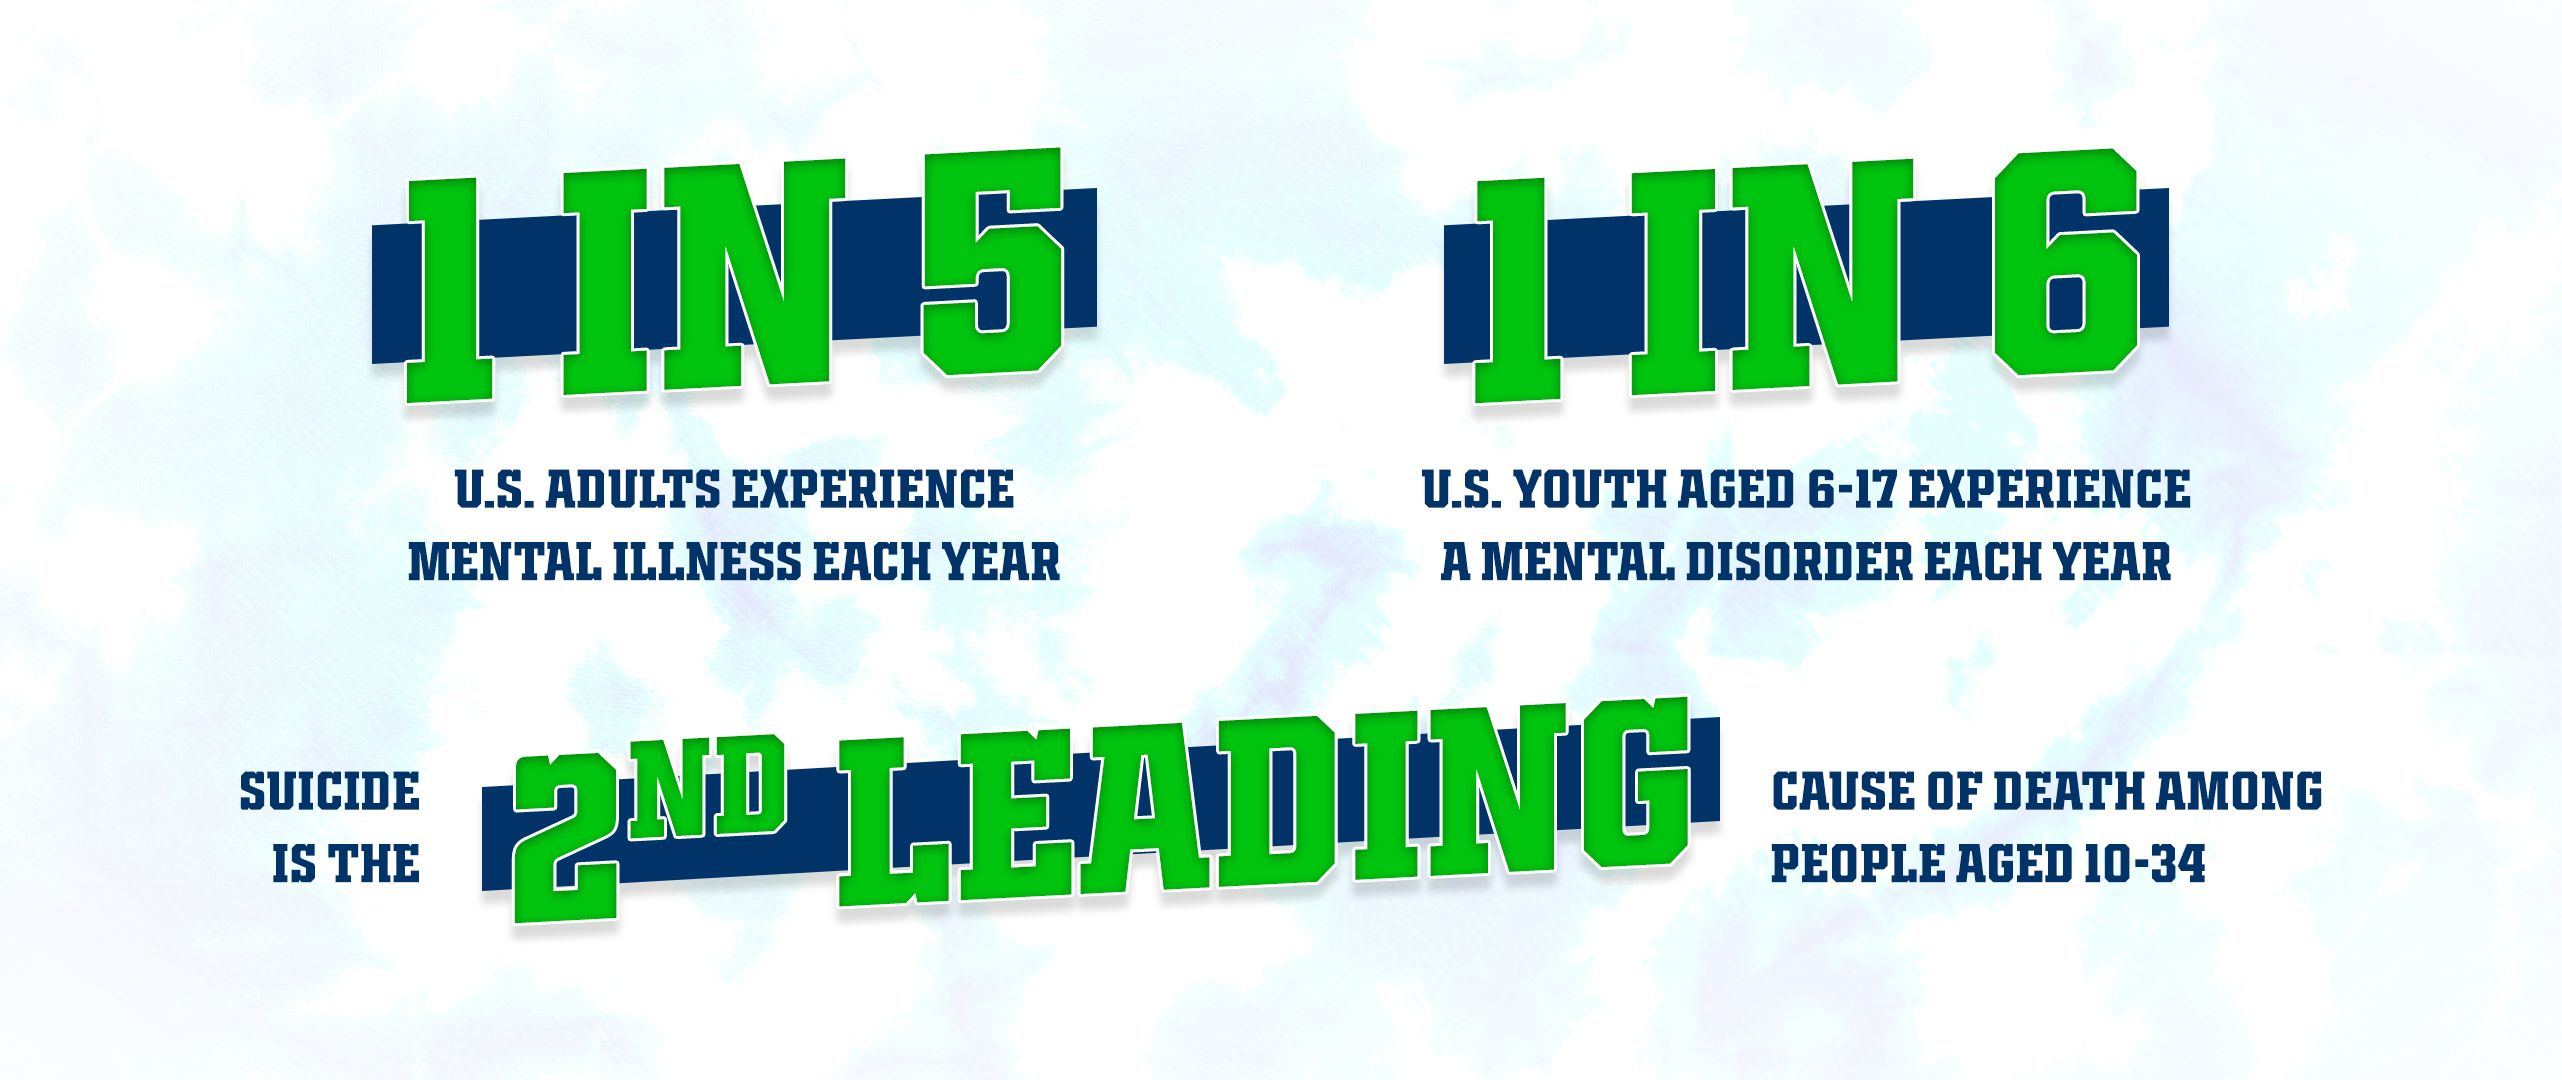 Kicking The Stigma National Statistics:  *   1 In 5 U.S. Adults experience mental illness each year *   1 in 6 U.S. Youth aged 6-17 experience a mental health disorder each year *   Suicide is the 2nd leading cause of death among people aged 10-34